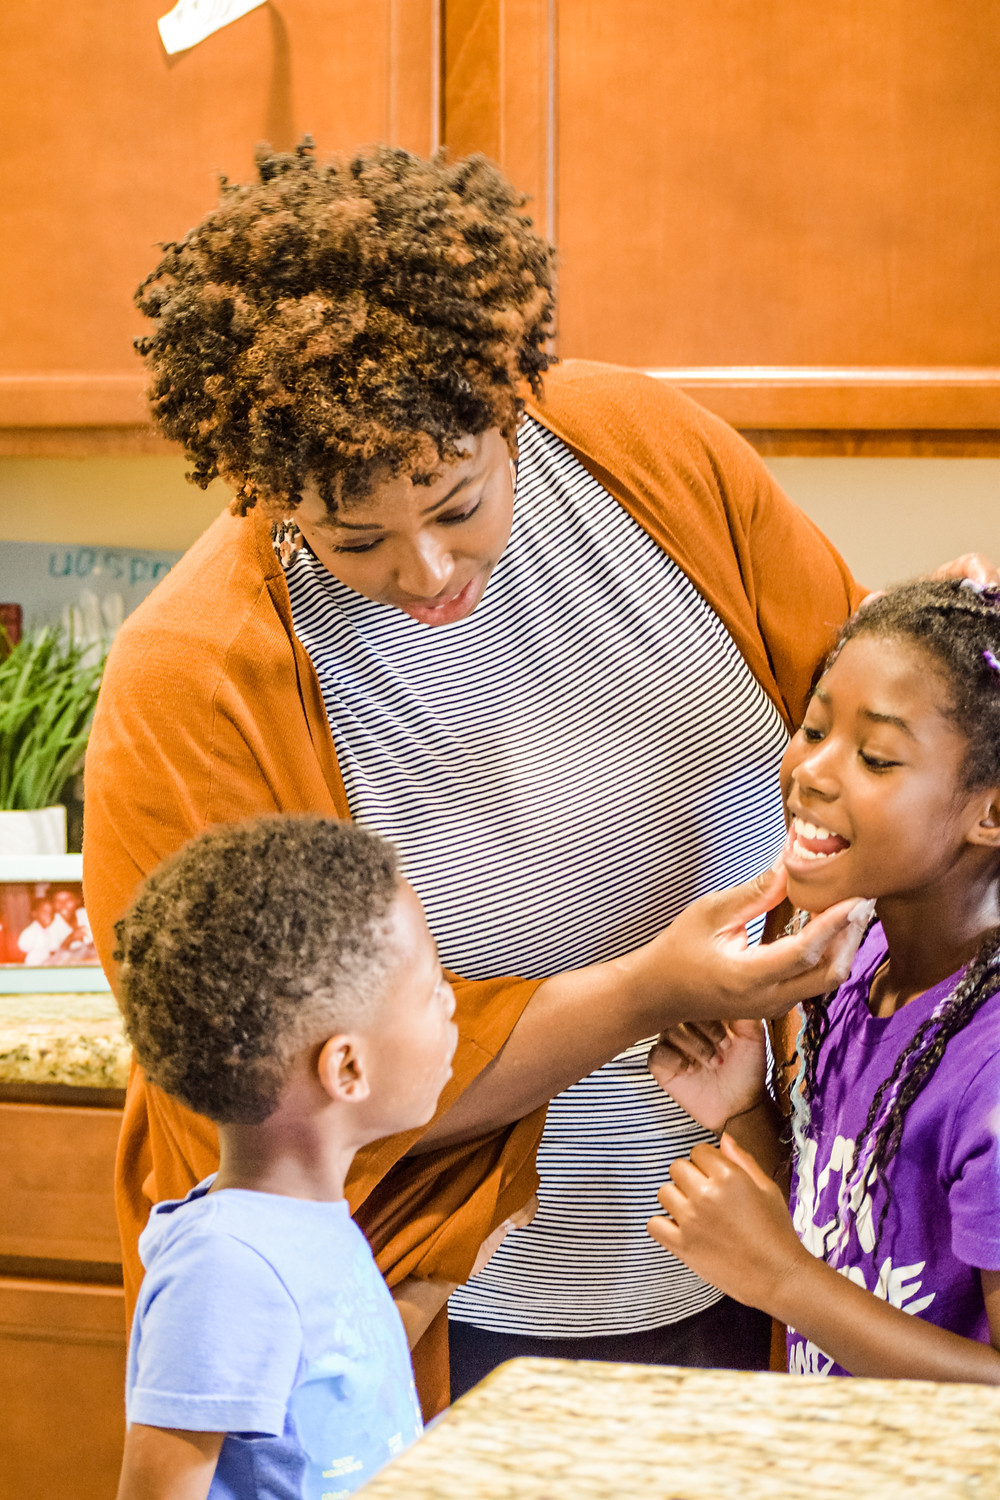 Shanell Tyus Black Mom in the kitchen with daughter and son. Natural curly hair kids, family in the kitchen. Black Mom and Black children.